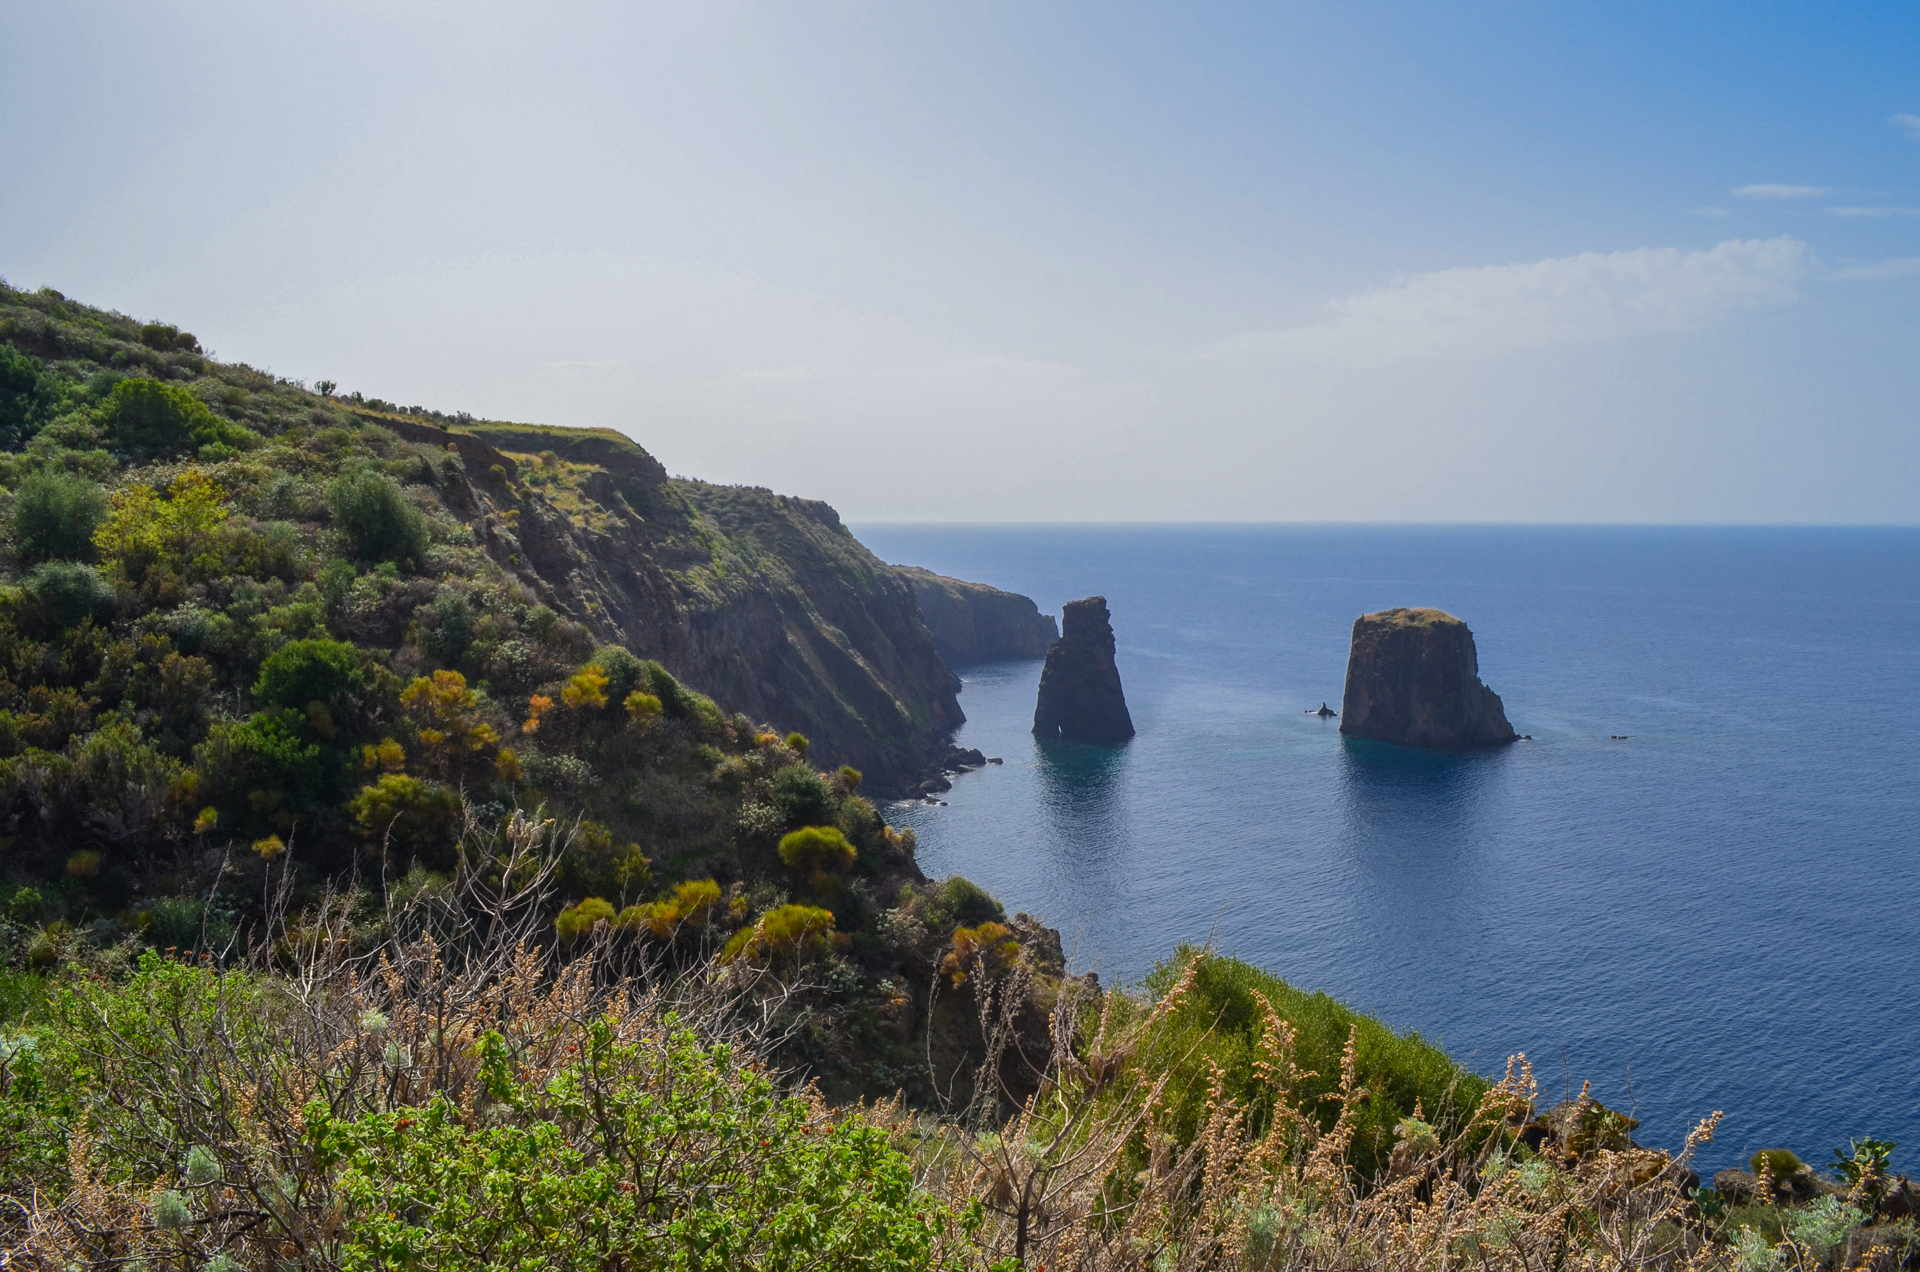 lipari travel, aeolian islands travel guide, travel blog lipari, aeolian islands travel, best places of aeolian islands, hiking lipari